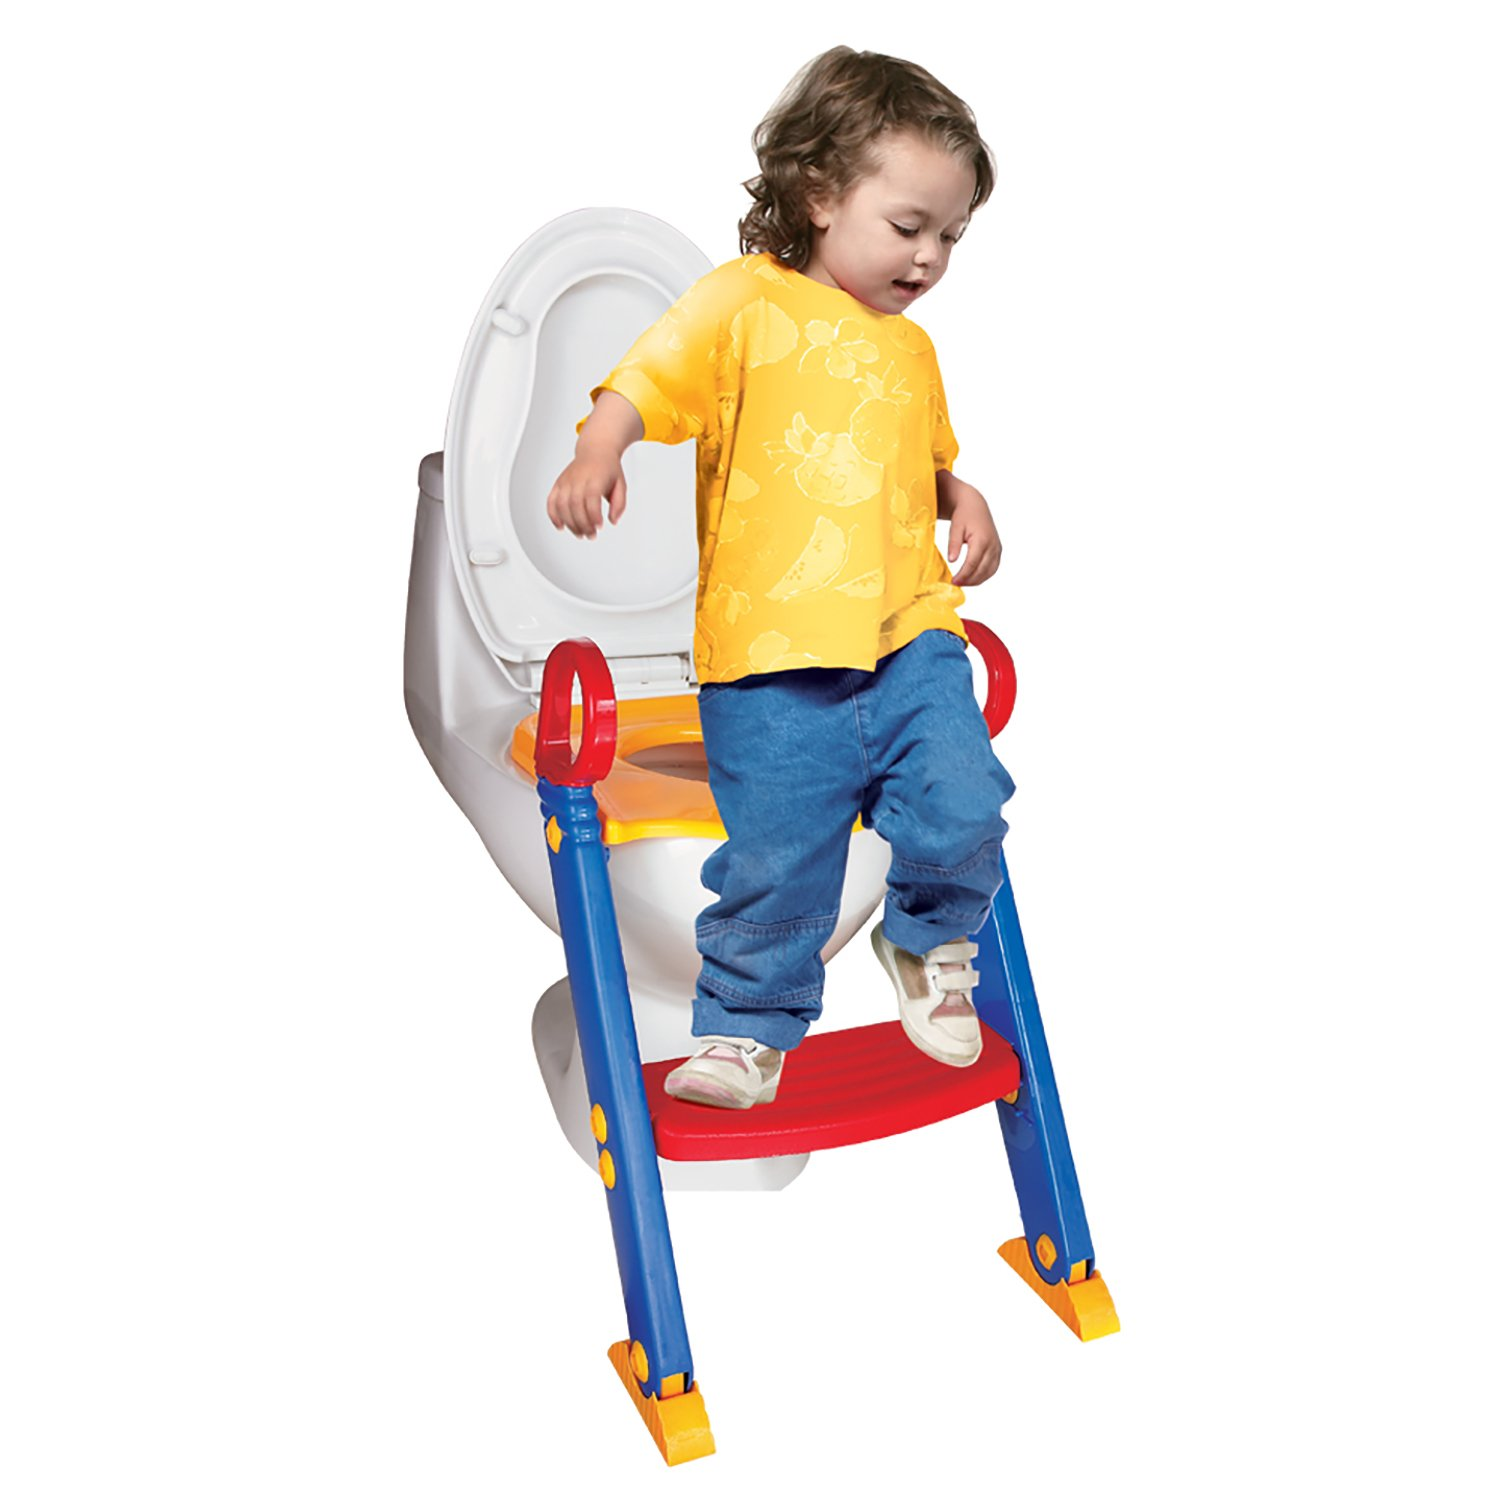 Chummie Joy 6 in 1 Portable Potty Training Ladder Step Up Seat for Boys and Girls with Anti-Skid Feet, Adjustable Steps, Comfortable Potty Seat and Handrail by Chummie